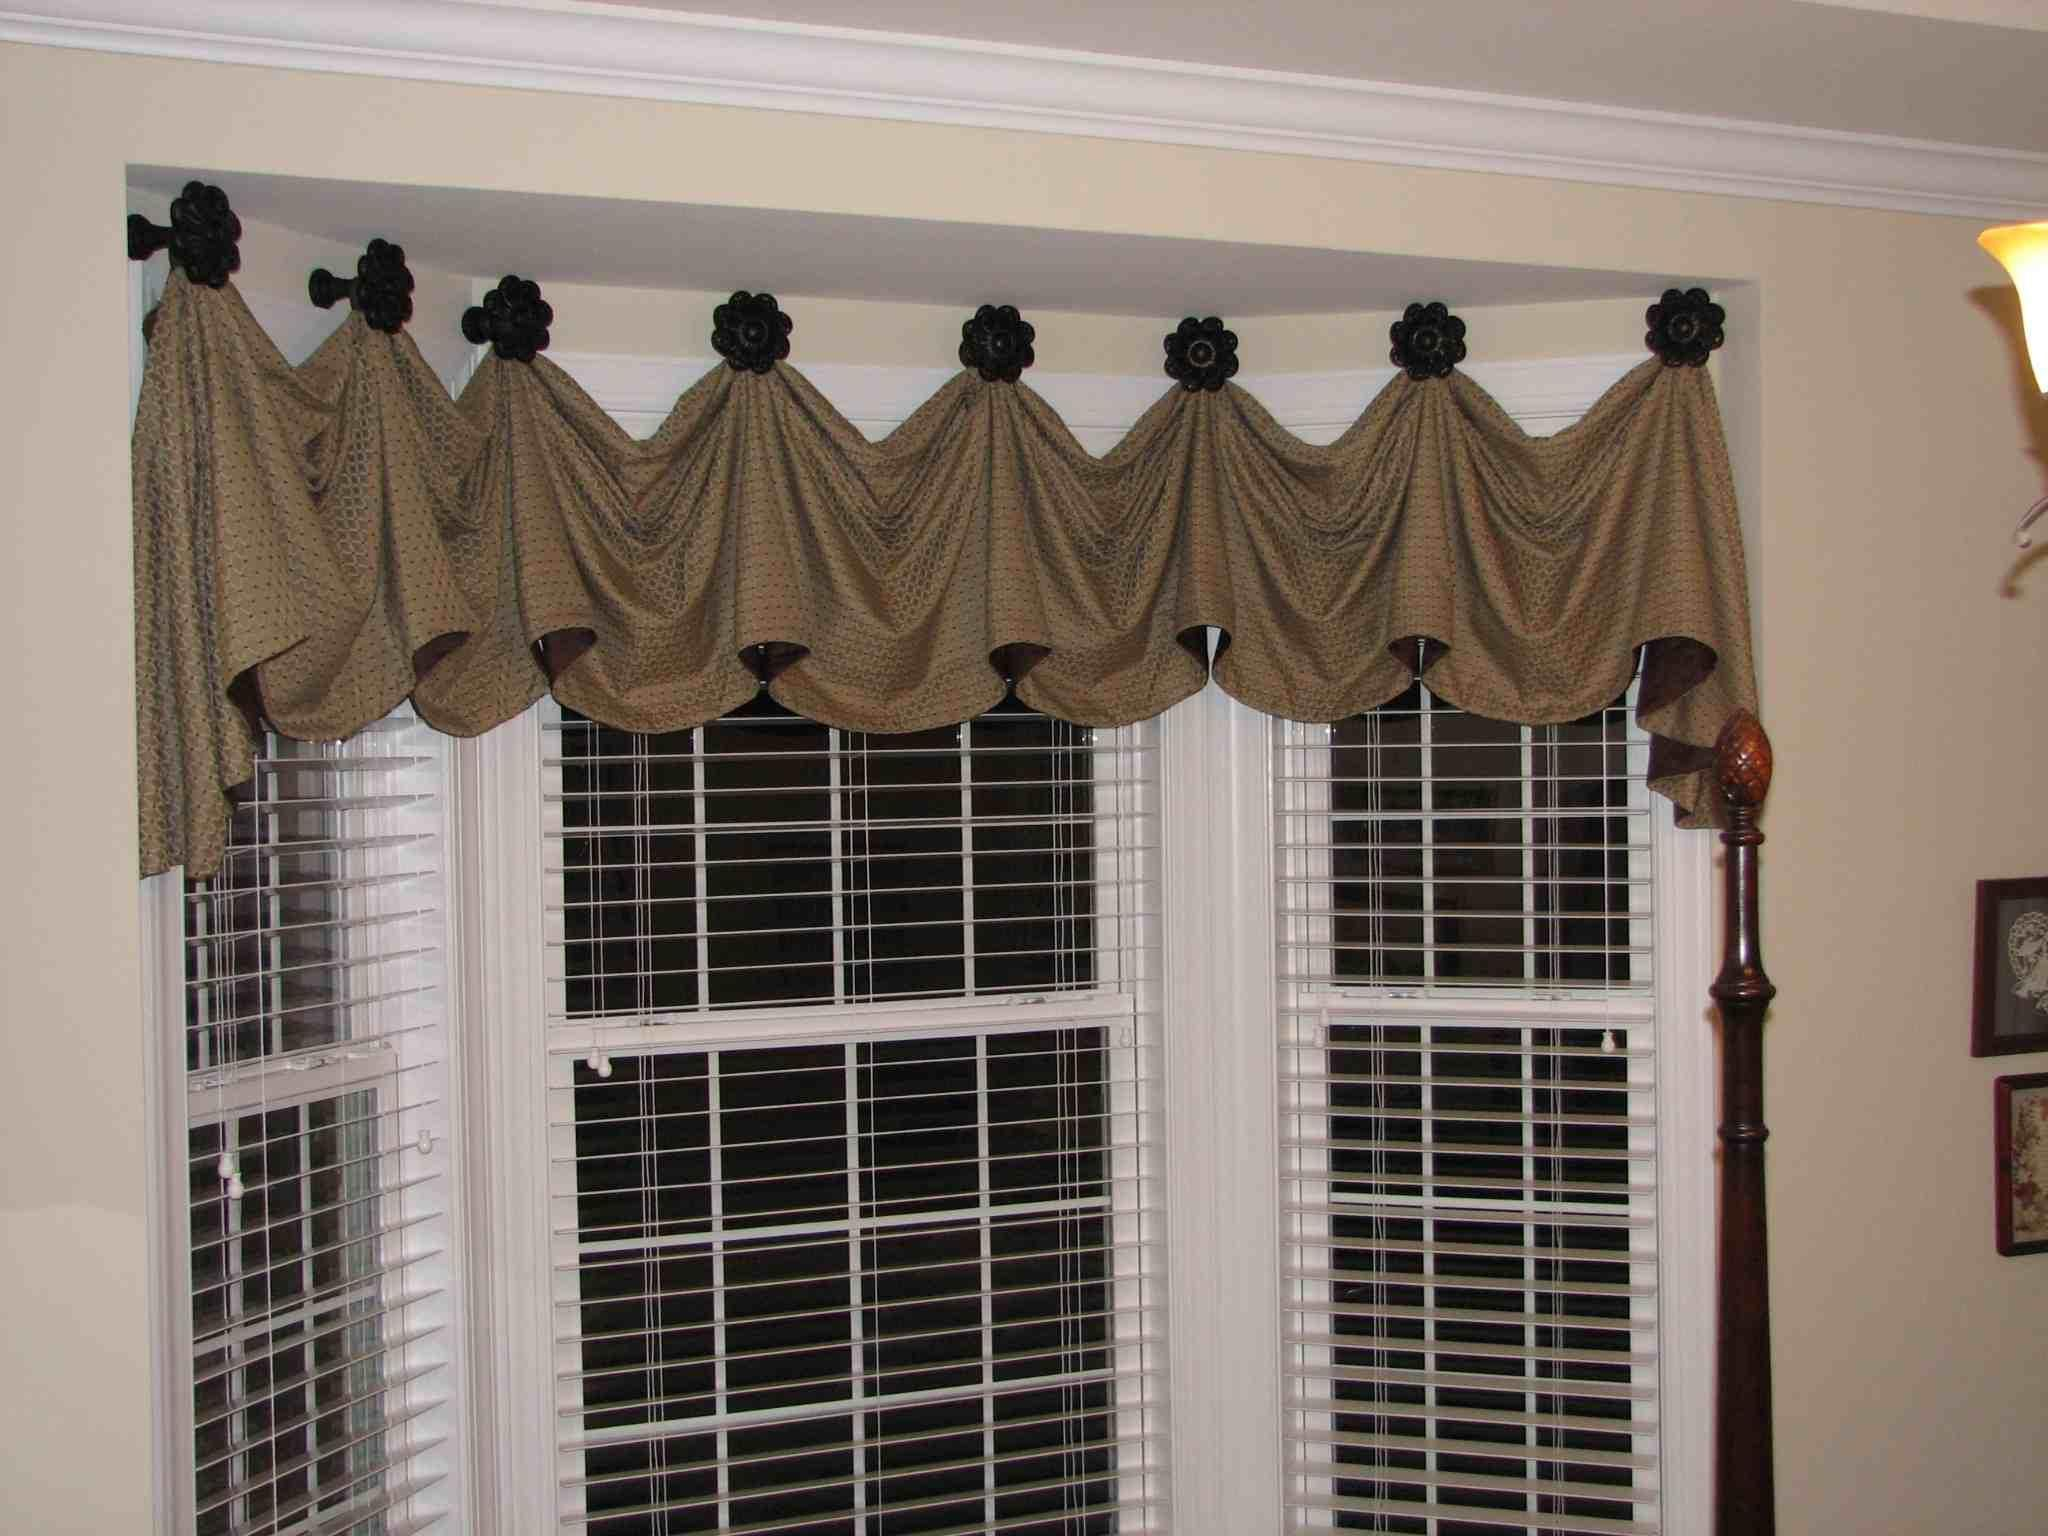 Window treatment valance ideas tailored window Window treatments for bay window in living room